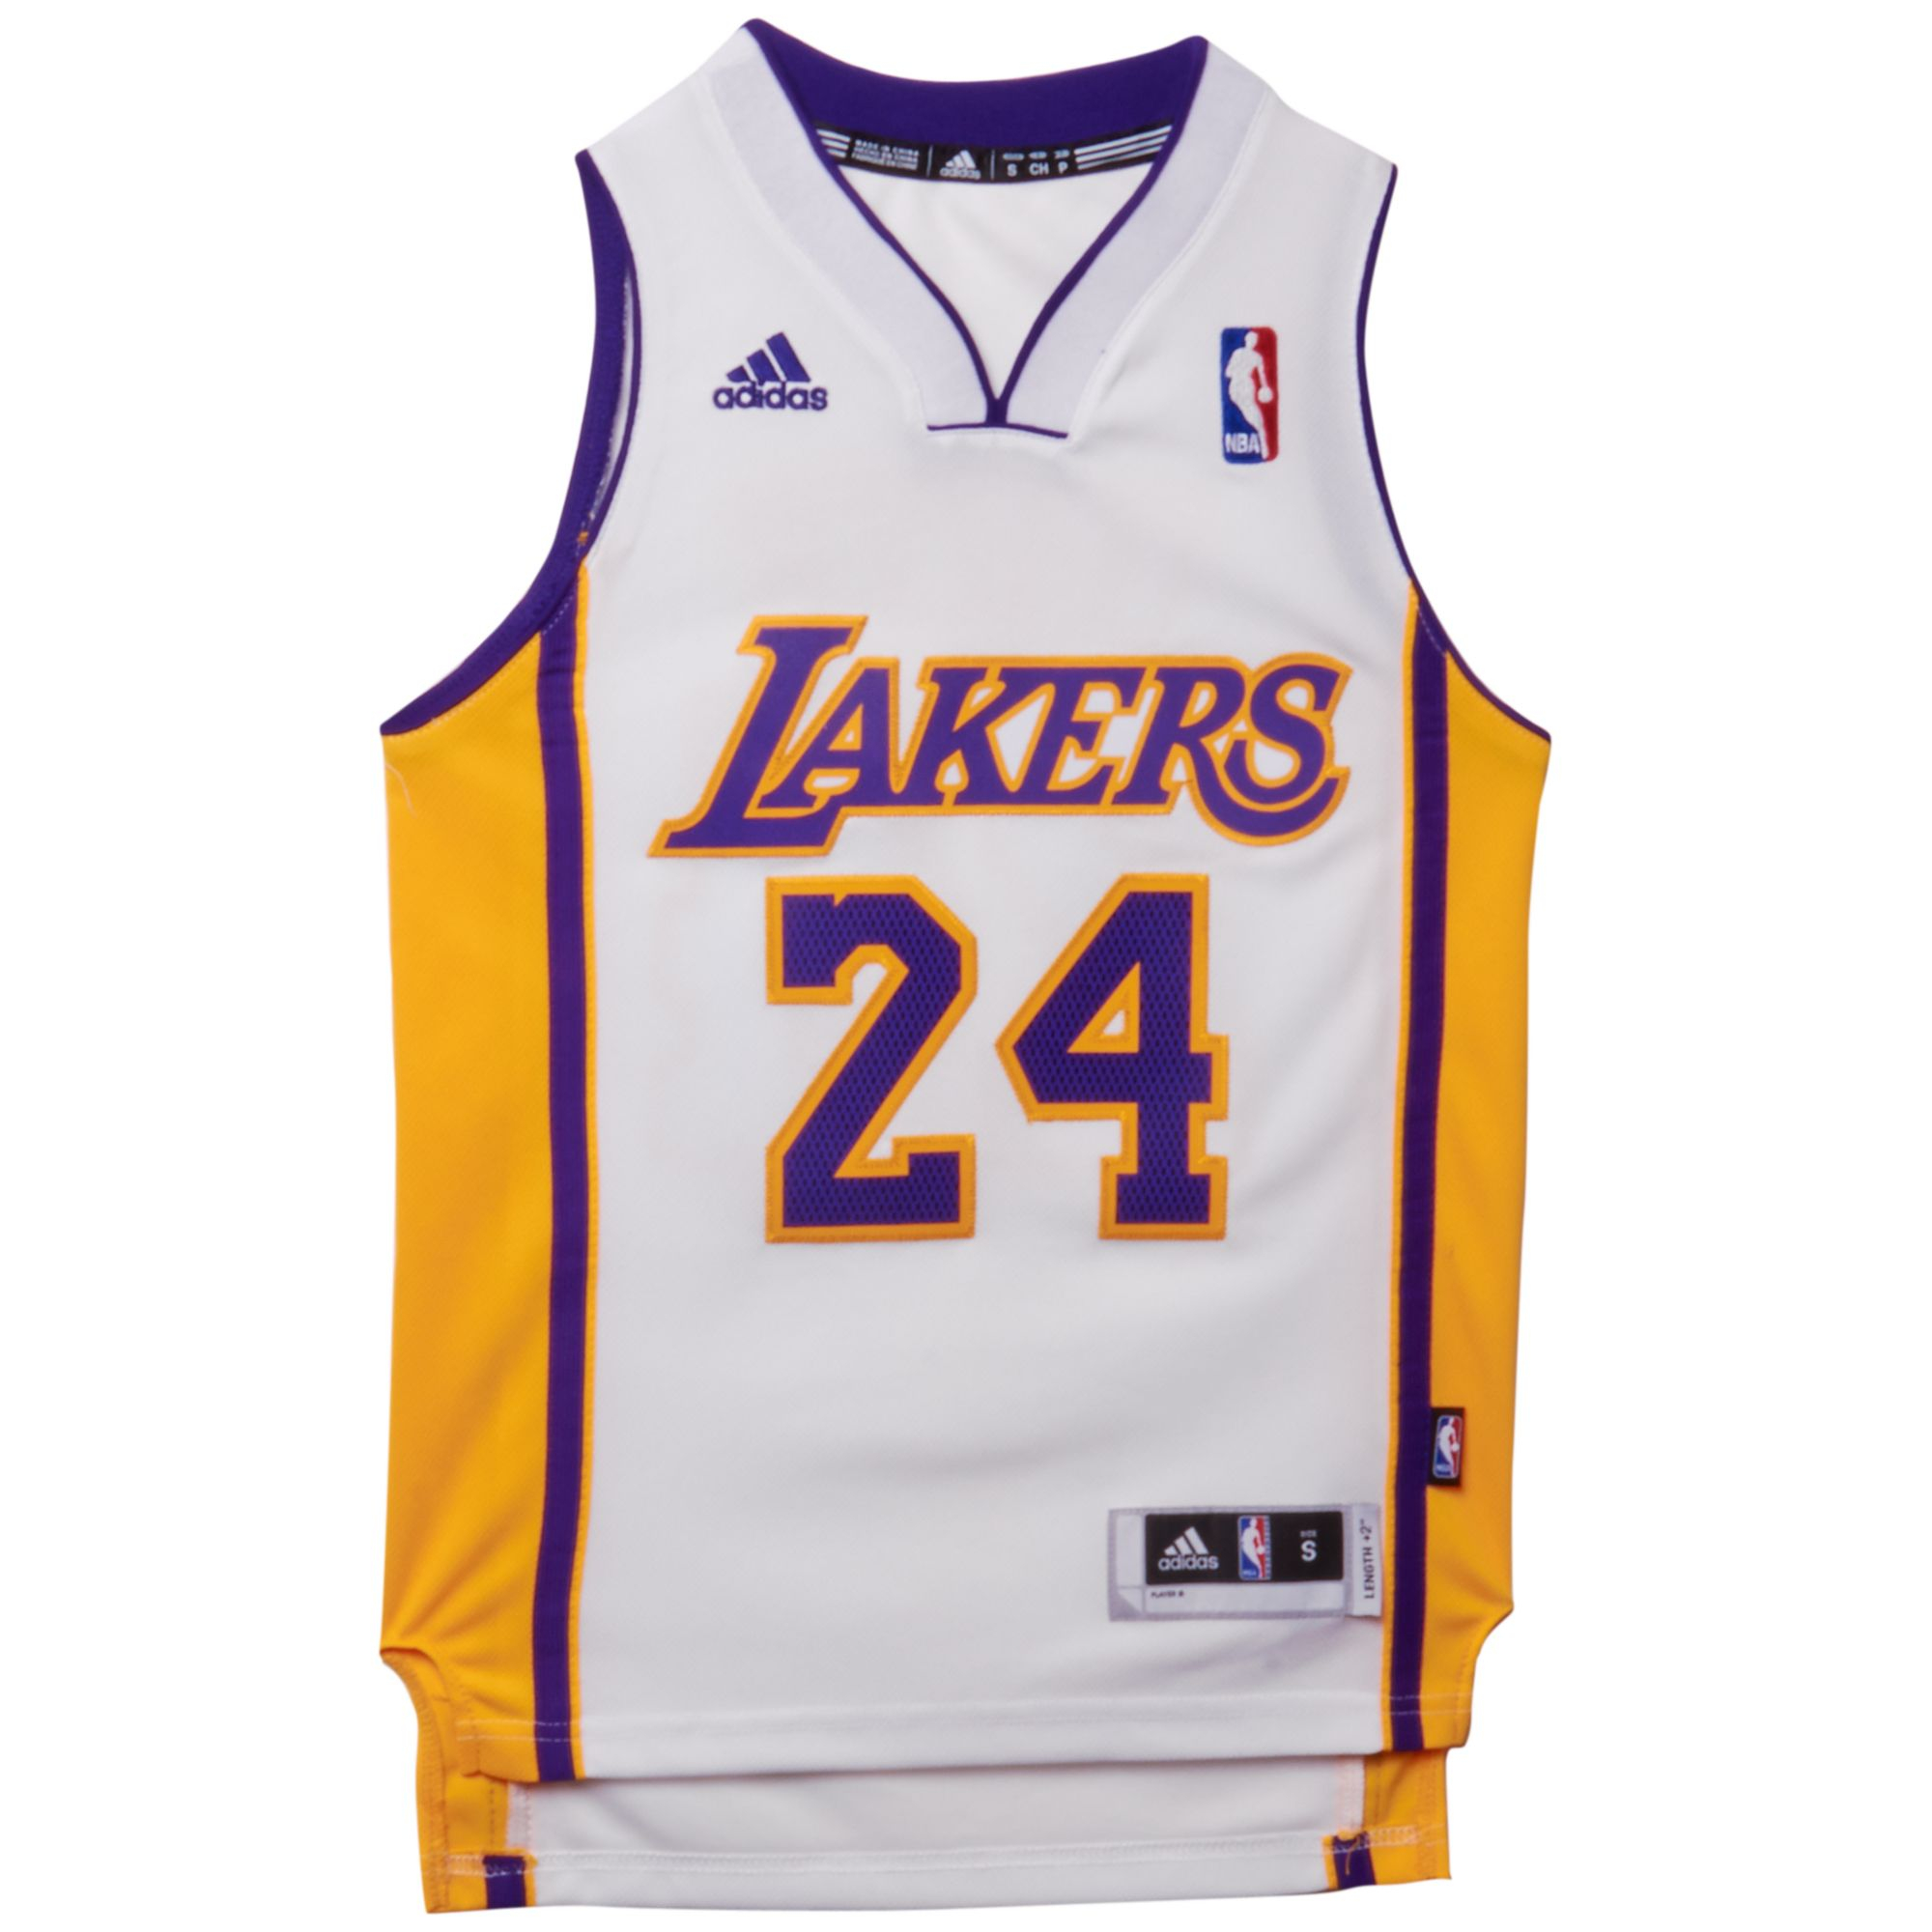 Adidas Kids' Kobe Bryant Los Angeles Lakers Swingman ...